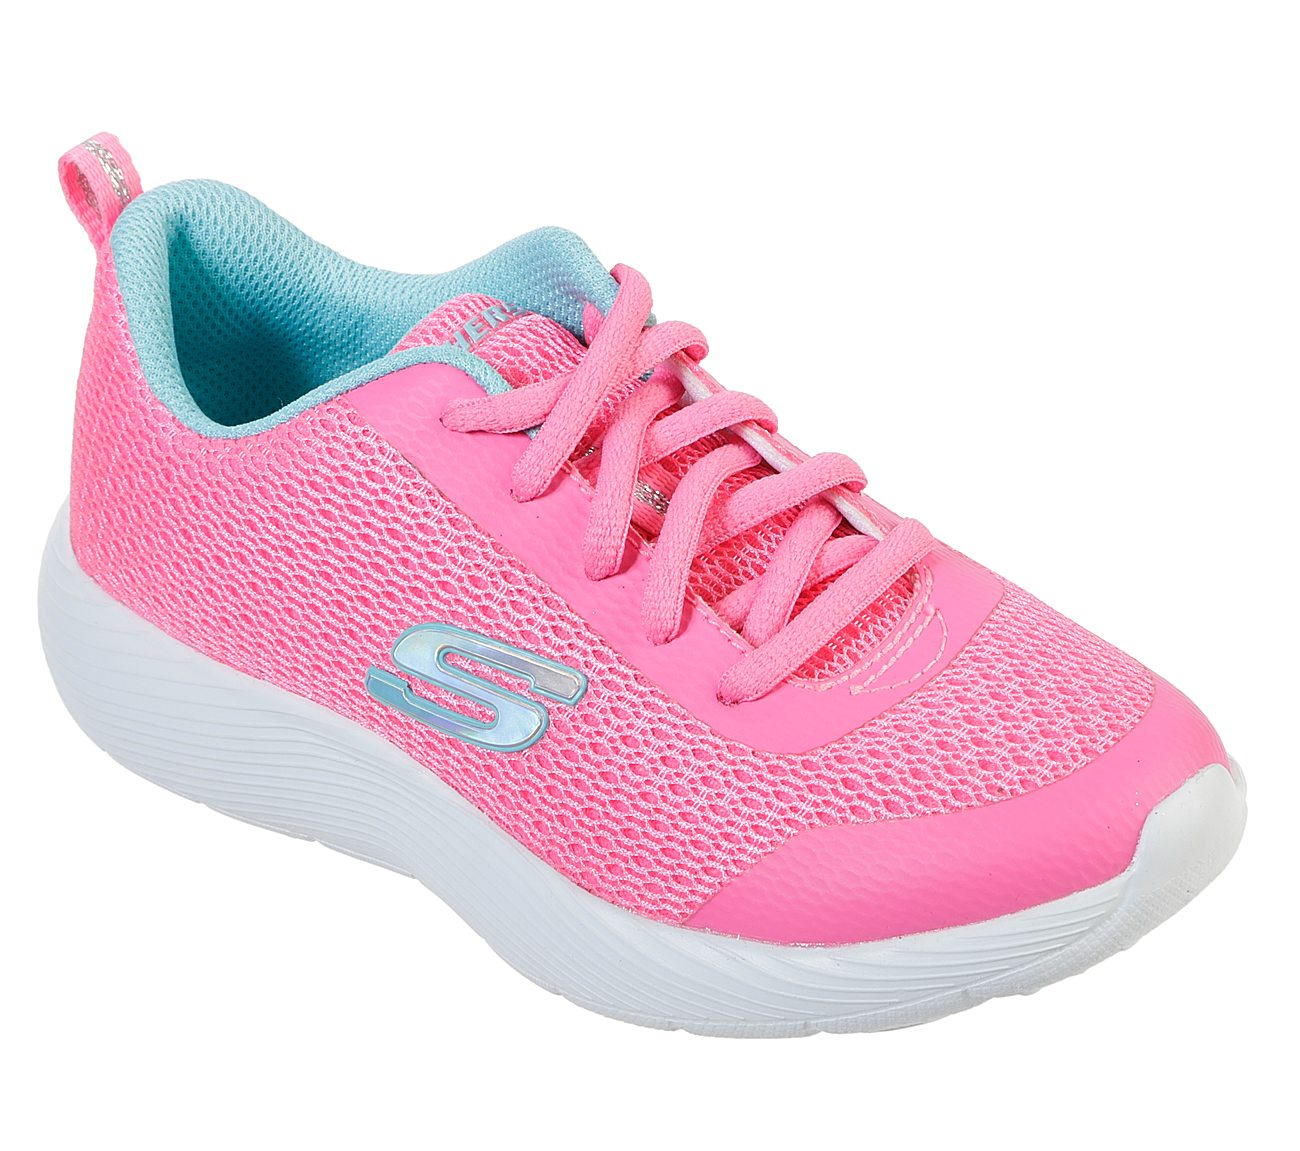 7a16ddce90f Buy SKECHERS Dyna-Lite - Ultra Dash Sport Shoes only  39.00